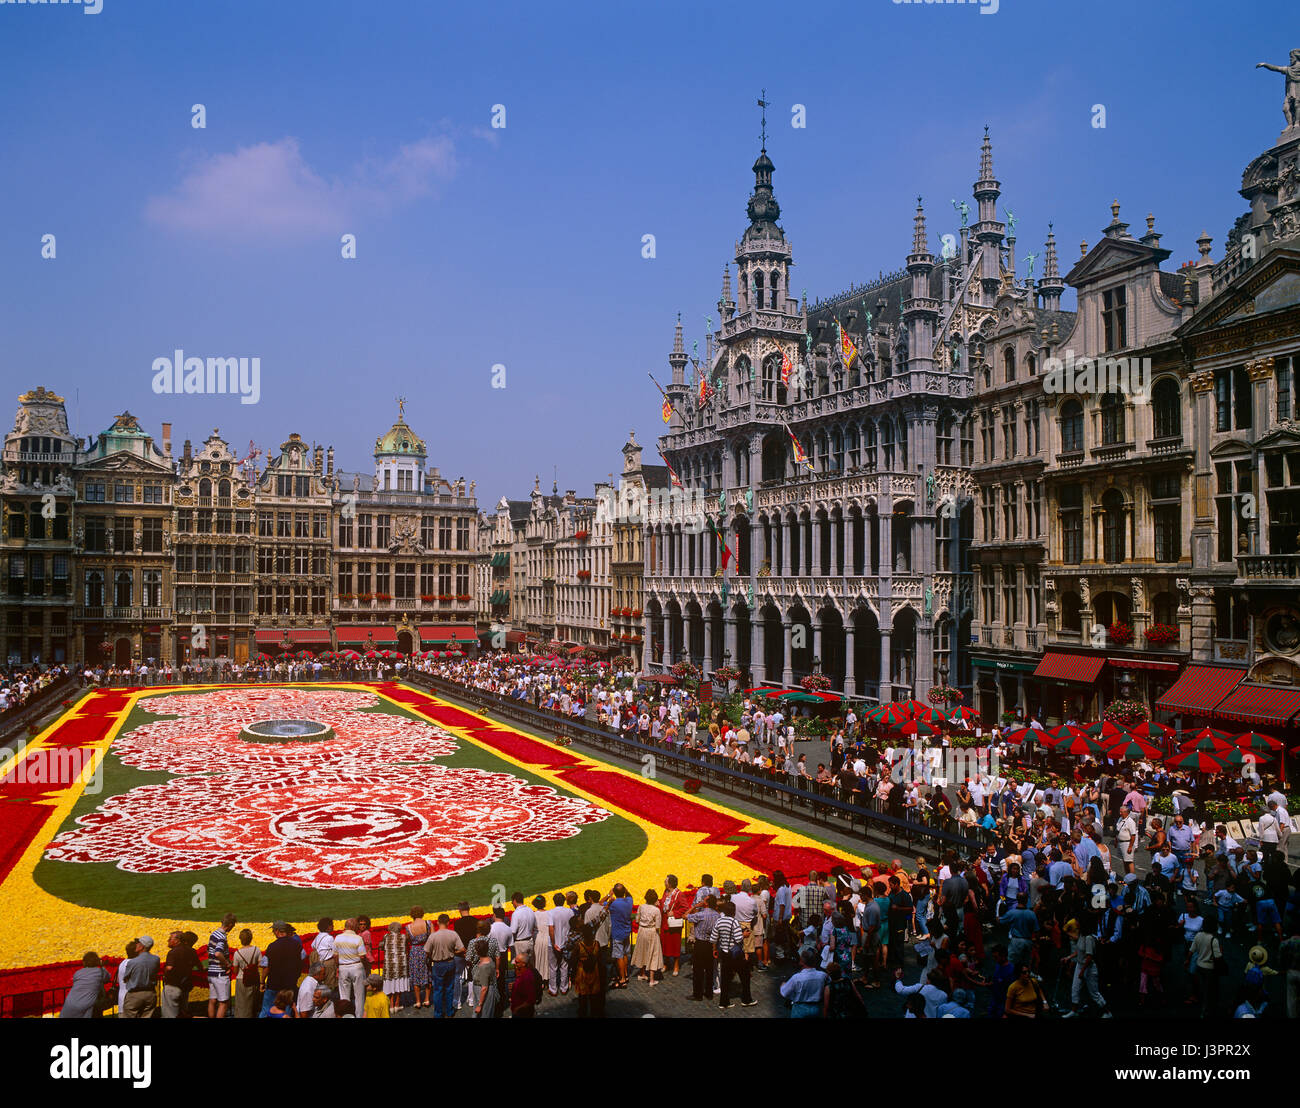 Flower Carpet in the Grand Place, Brussels, Belgium - Stock Image